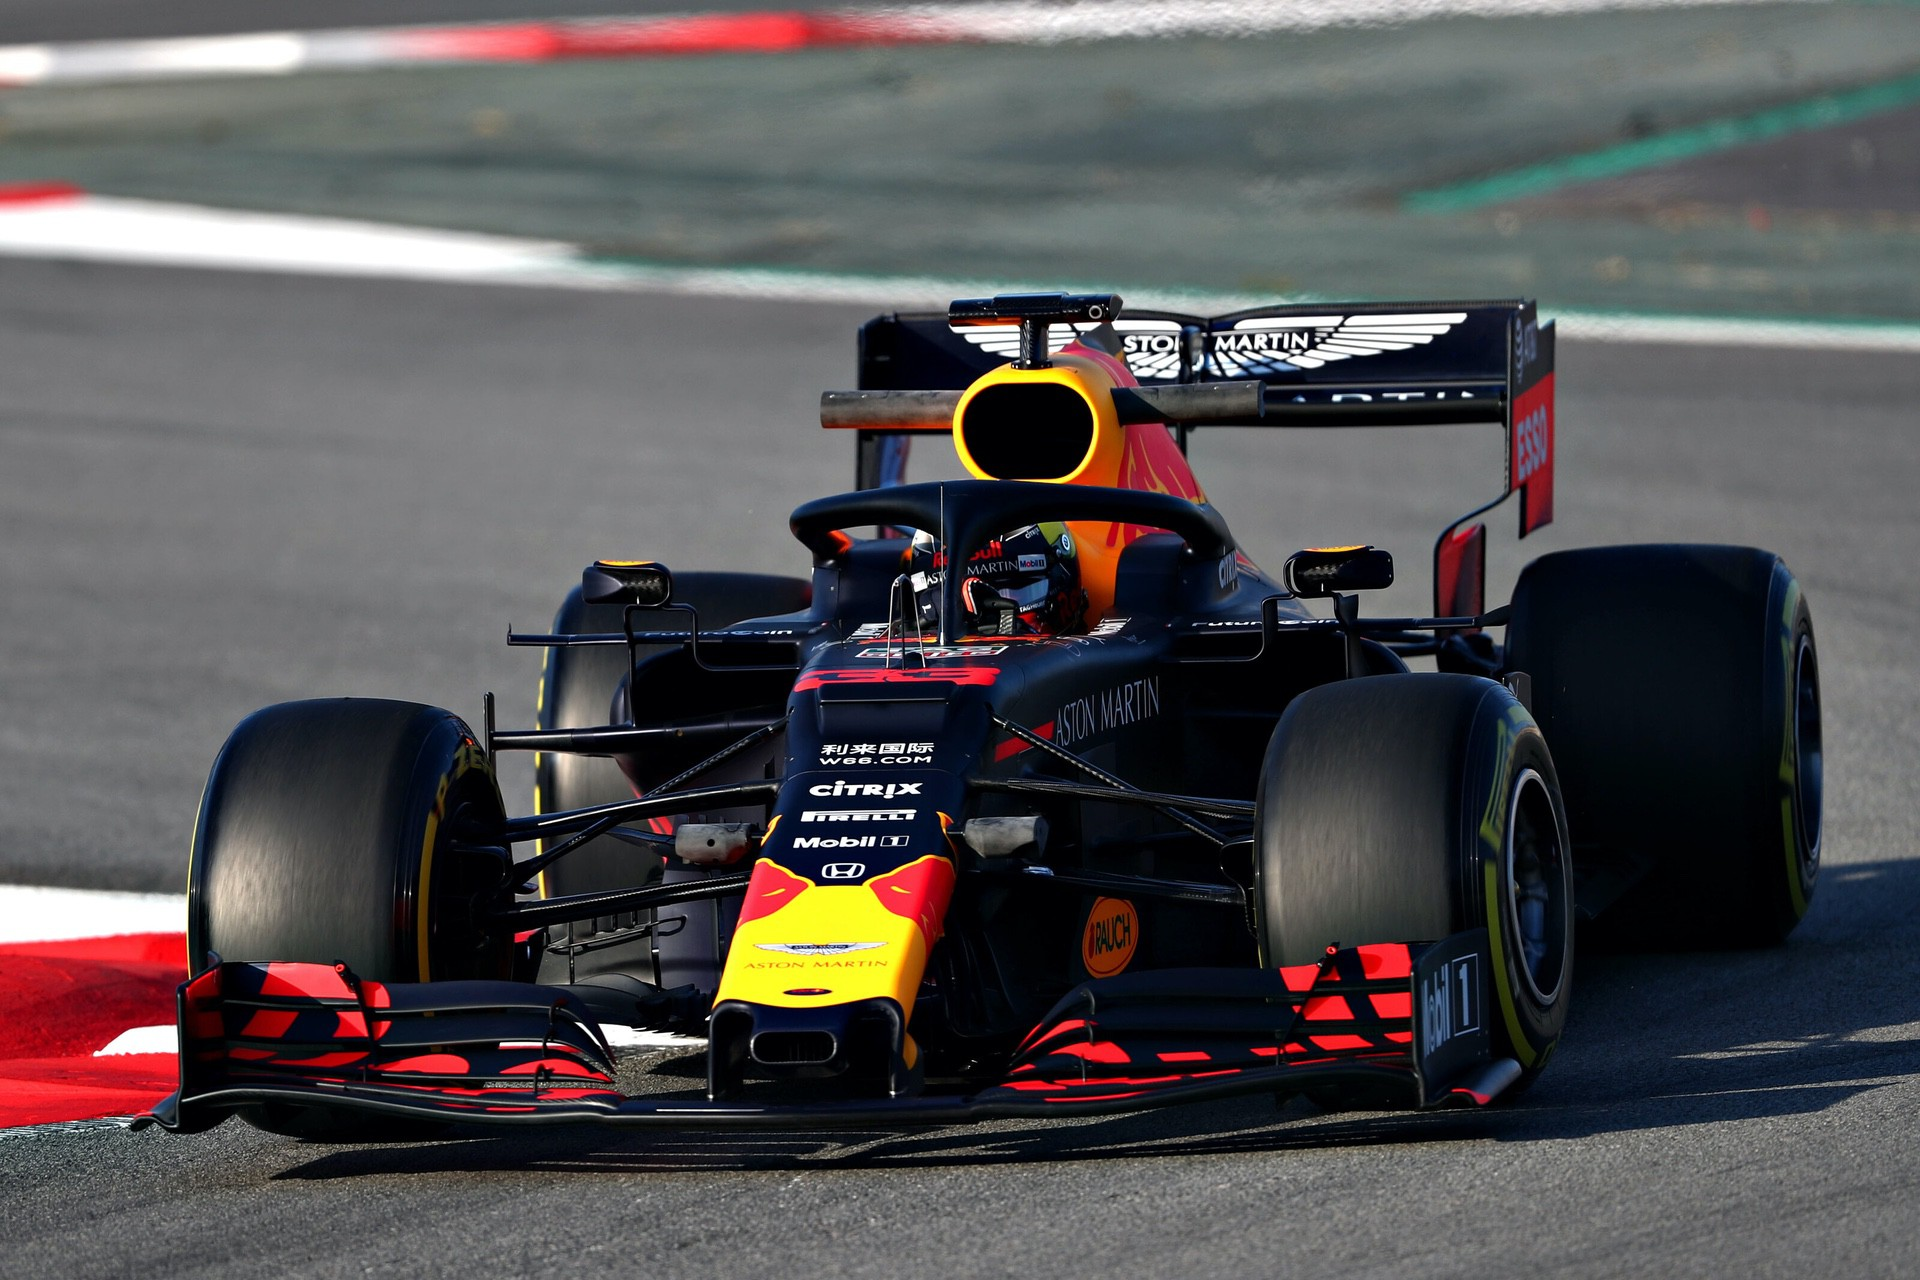 MONTMELO, SPAIN - FEBRUARY 18: Max Verstappen of the Netherlands driving the (33) Aston Martin Red Bull Racing RB15 on track during day one of F1 Winter Testing at Circuit de Catalunya on February 18, 2019 in Montmelo, Spain. (Photo by Dan Istitene/Getty Images) // Getty Images / Red Bull Content Pool  // AP-1YFQGD6611W12 // Usage for editorial use only // Please go to www.redbullcontentpool.com for further information. //